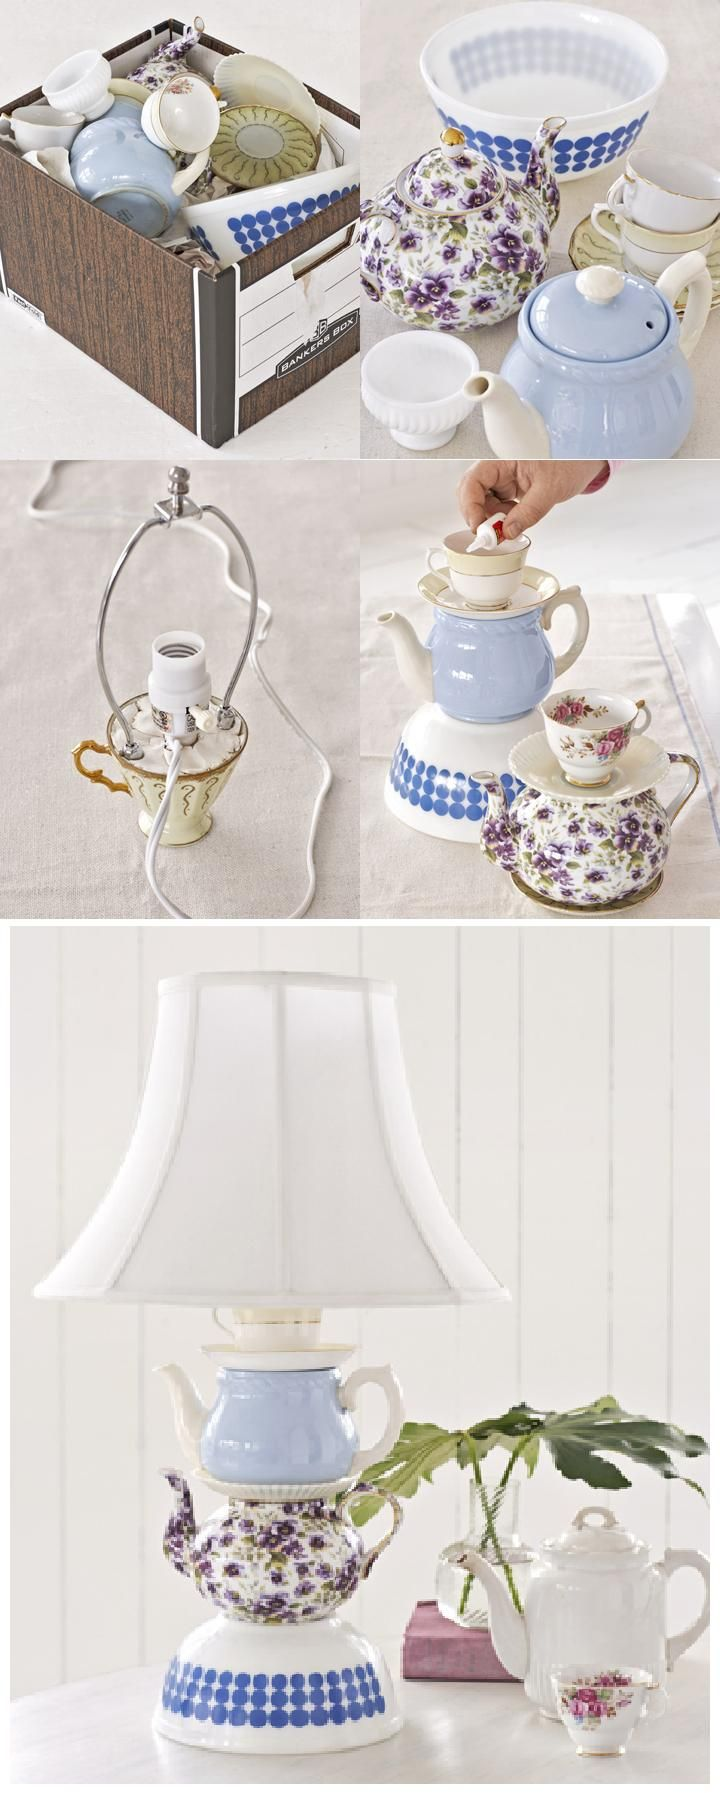 A Teacup Lamp - Clever use for mismatched china! Fun! DIY. Upcycle. Country Living project idea with instructions.